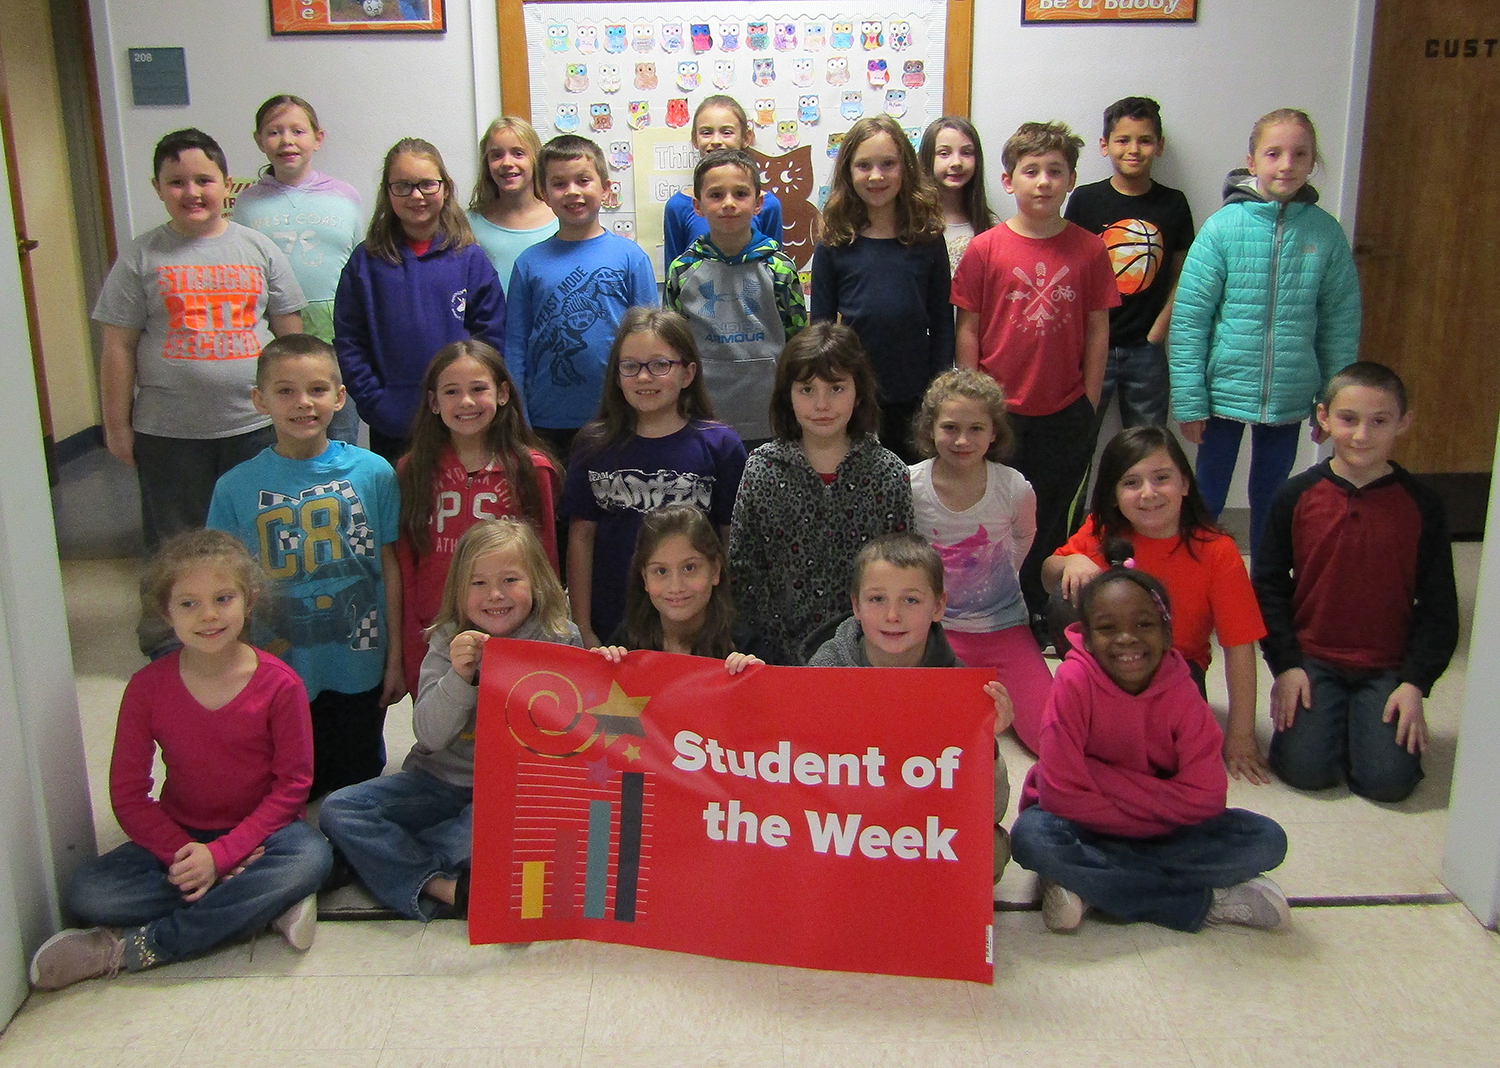 3rd grade student of the week